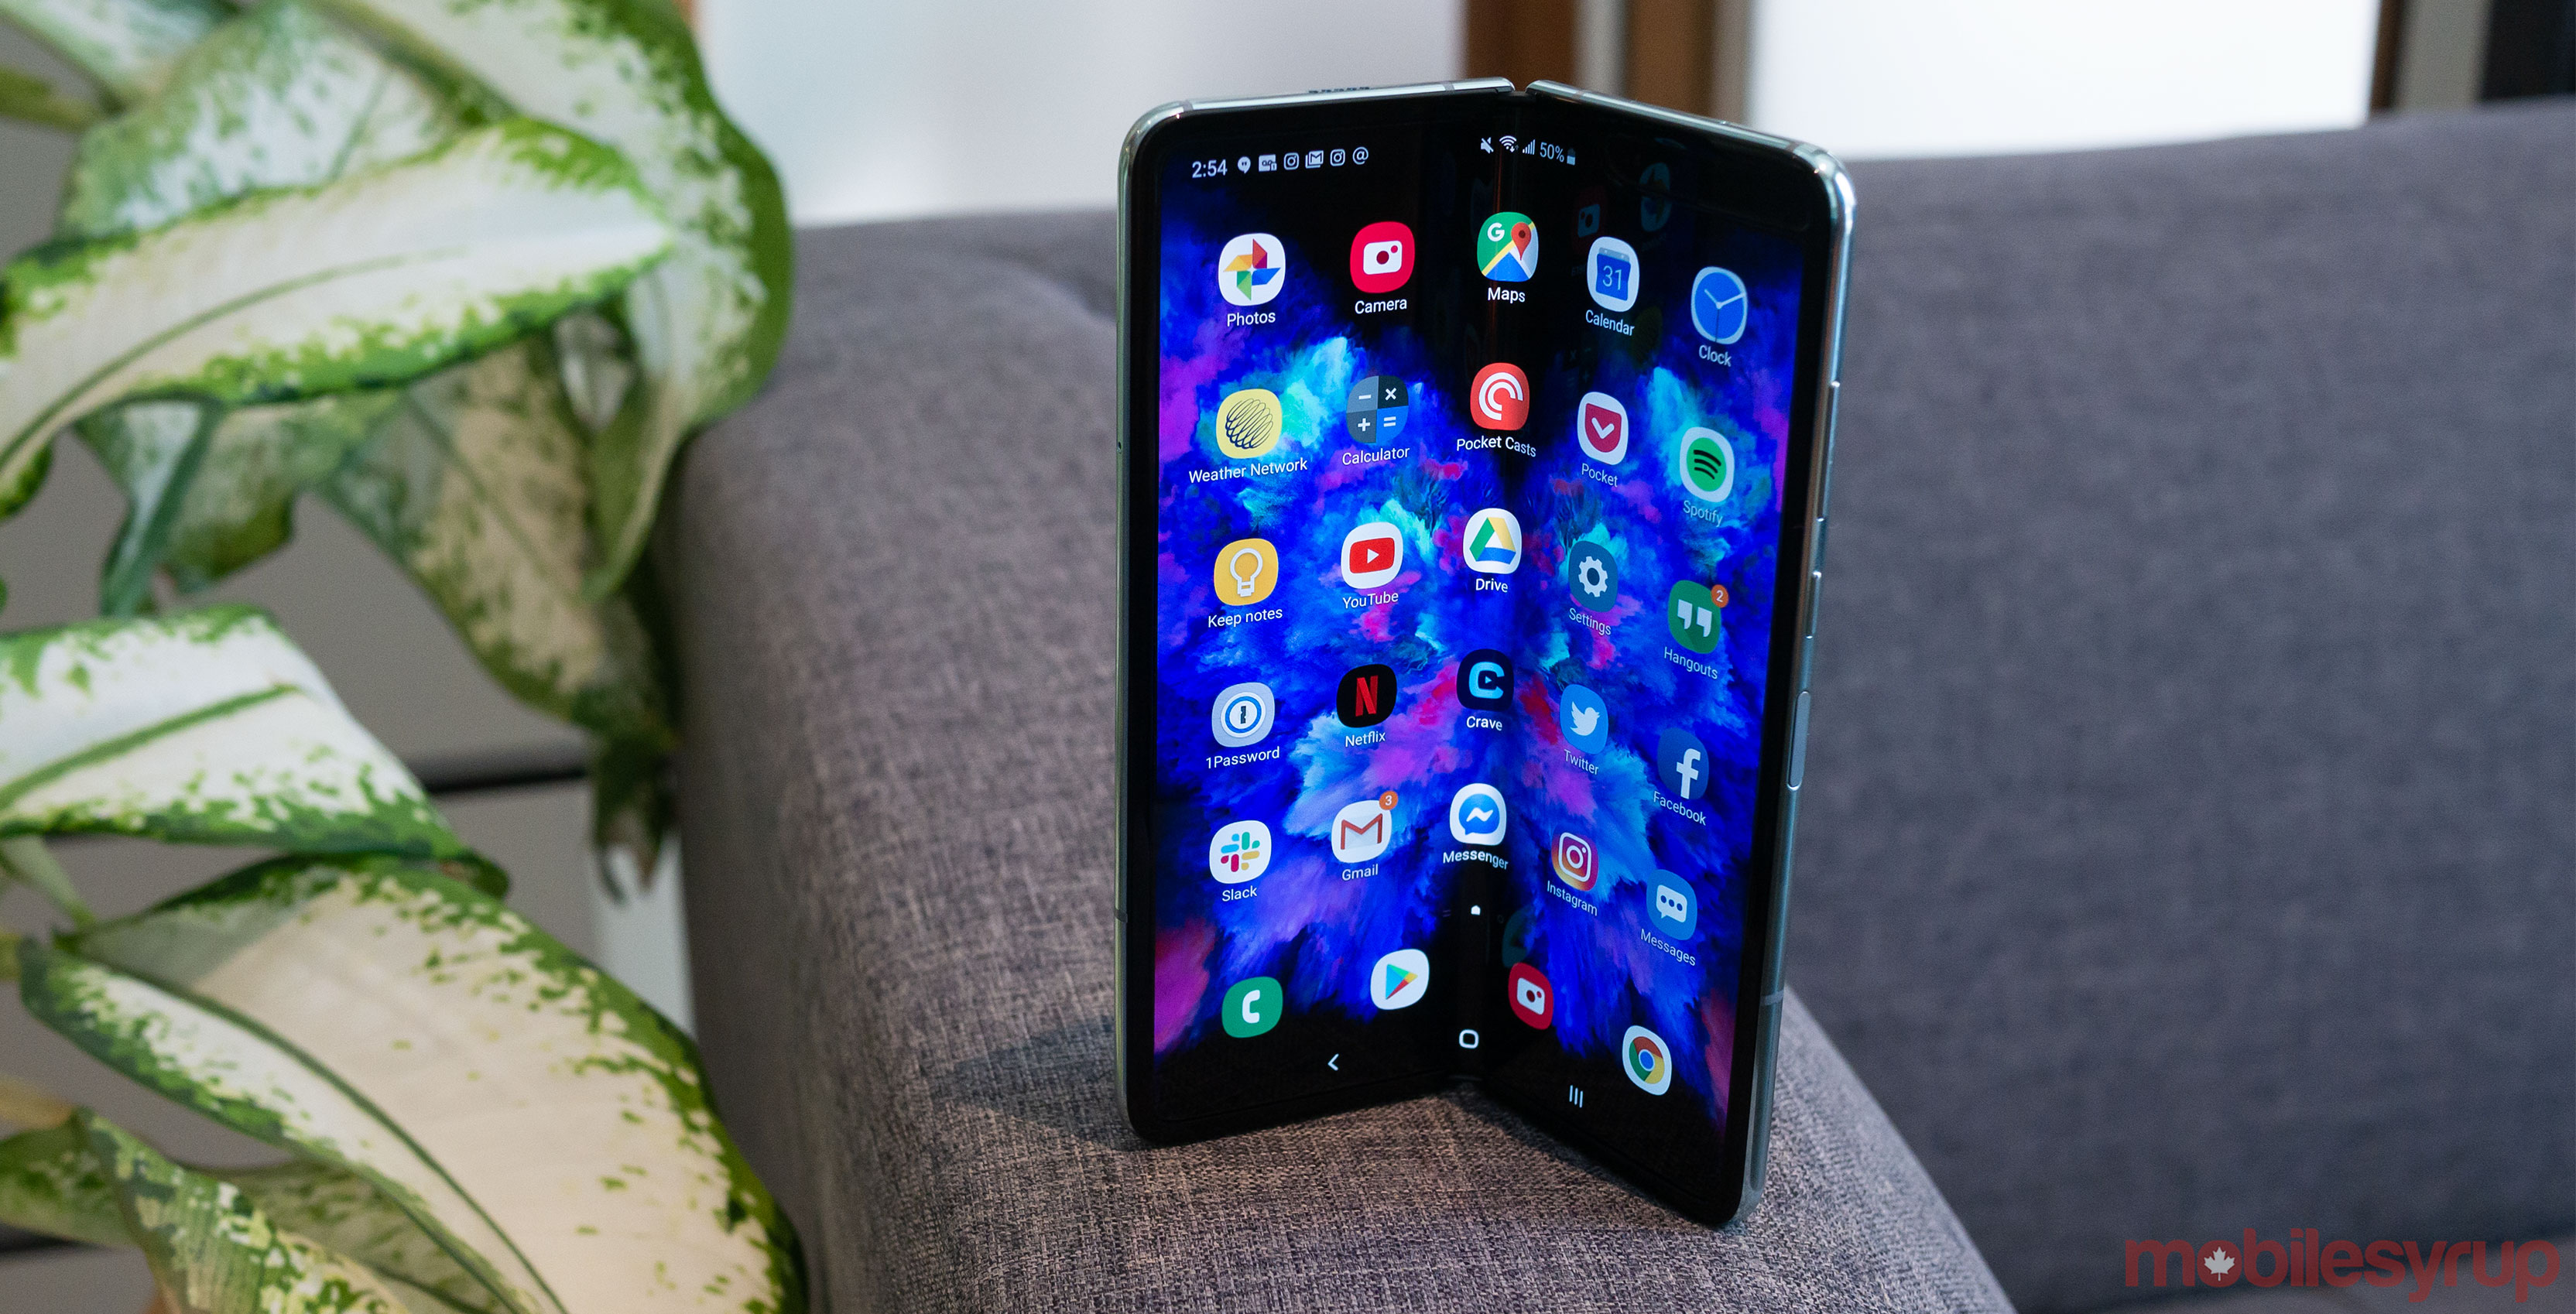 Samsung's Galaxy Fold to go on sale in South Korea on